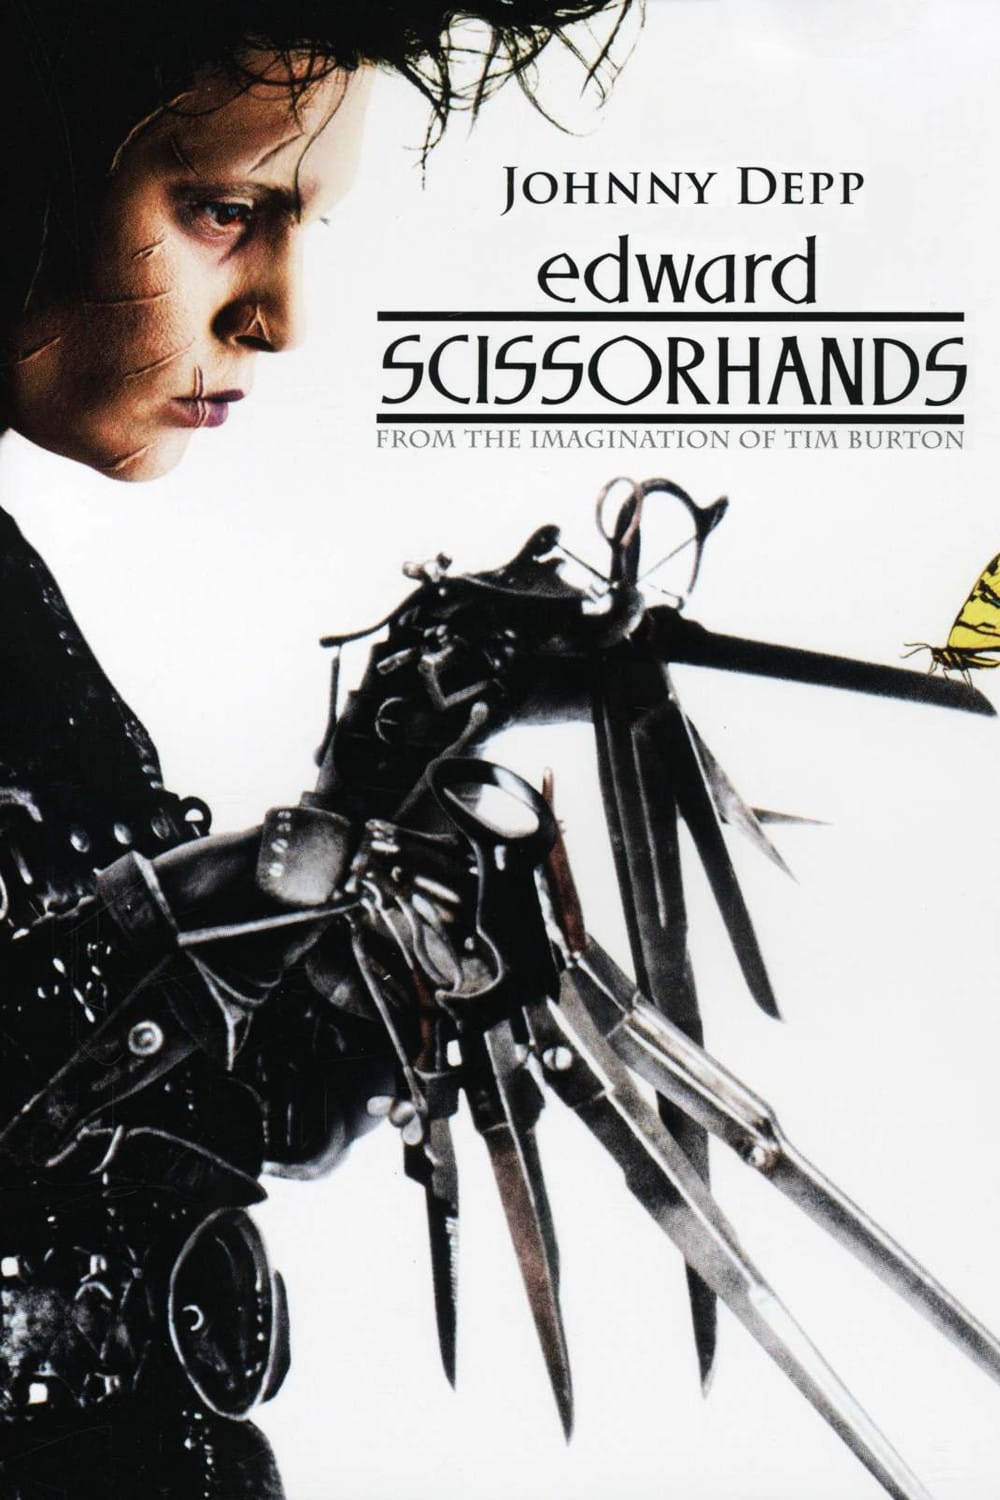 edward scissorhands movie synopsis Edward scissorhandsplot summary sheet fill in the missing words to complete this plot summary of the film the words are all contained in the box below.